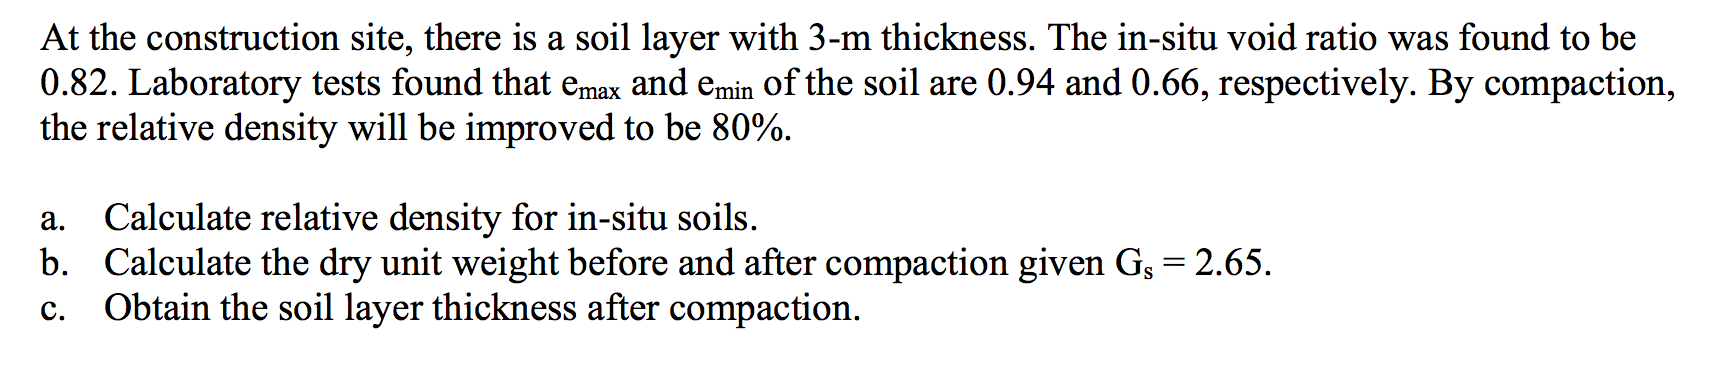 At the construction site, there is a soil layer with 3-m thickness. The in-situ void ratio was found to be 0.82. Laboratory t